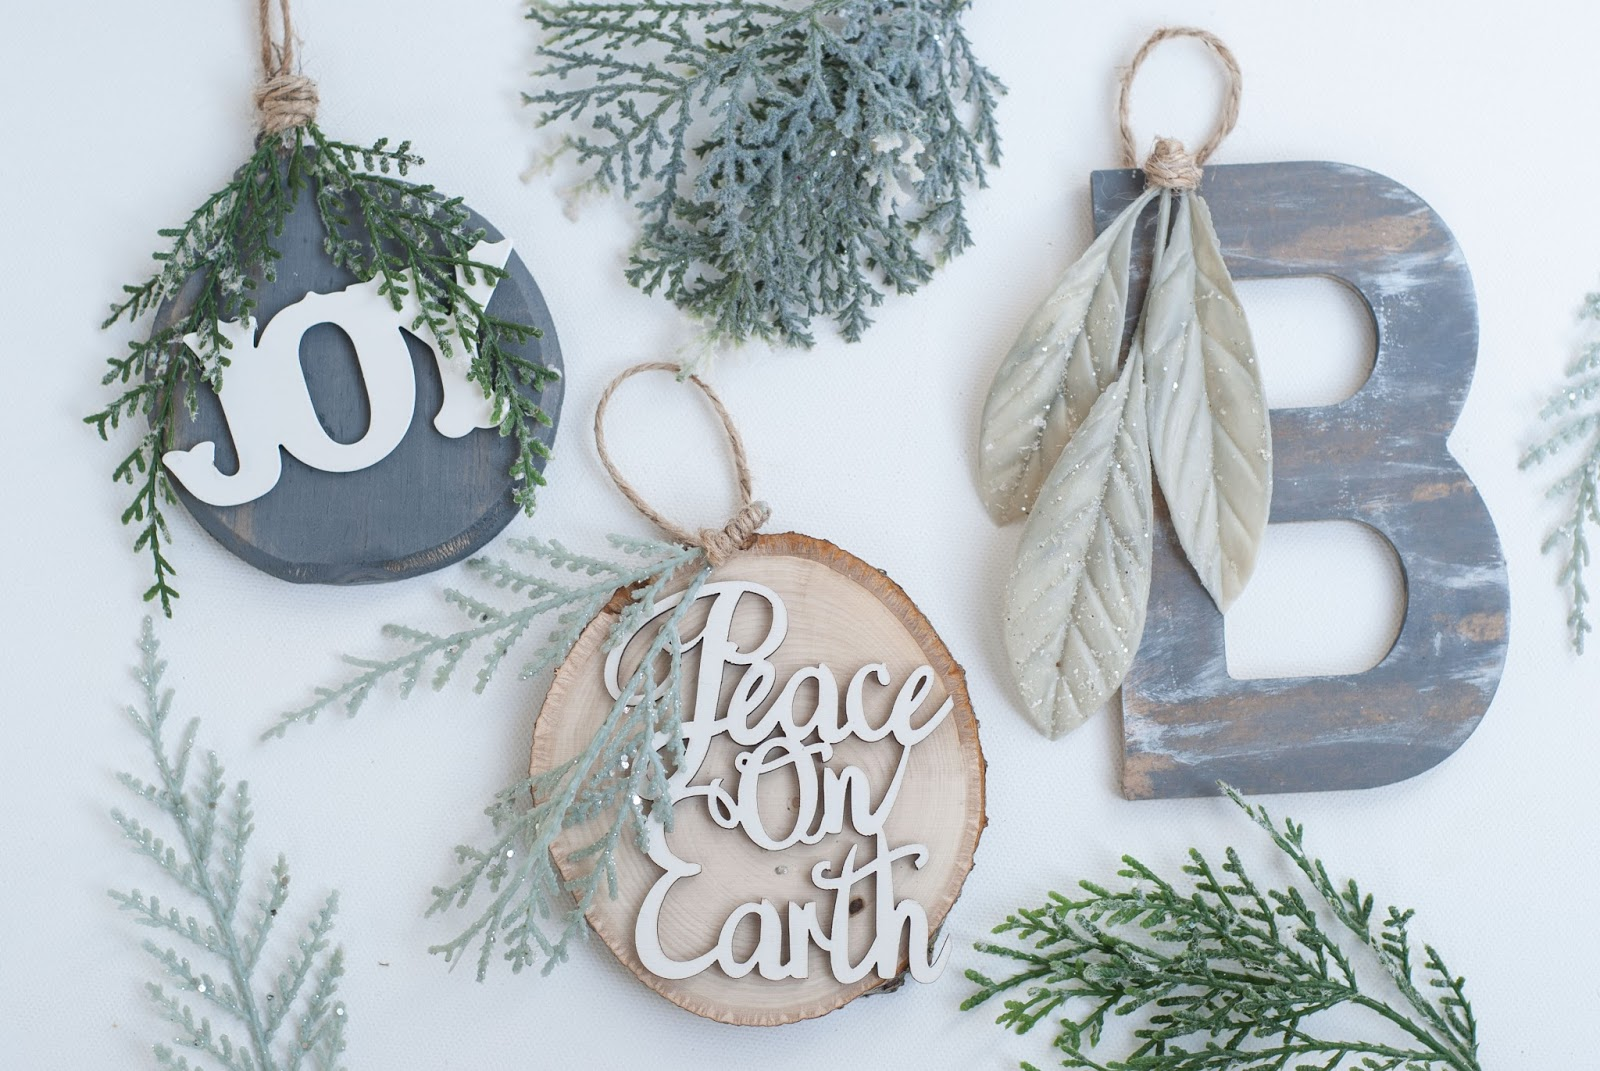 12 DIY Rustic Ornaments for Christmas| Rustic Ornaments, DIY Ornaments, Holiday Ornaments, DIY Christmas, DIY Christmas Ornaments, Holiday Crafts, Holiday Craft Projects, Crafts, Christmas Crafts #ChristmasOrnaments #Christmas #HolidayCrafts